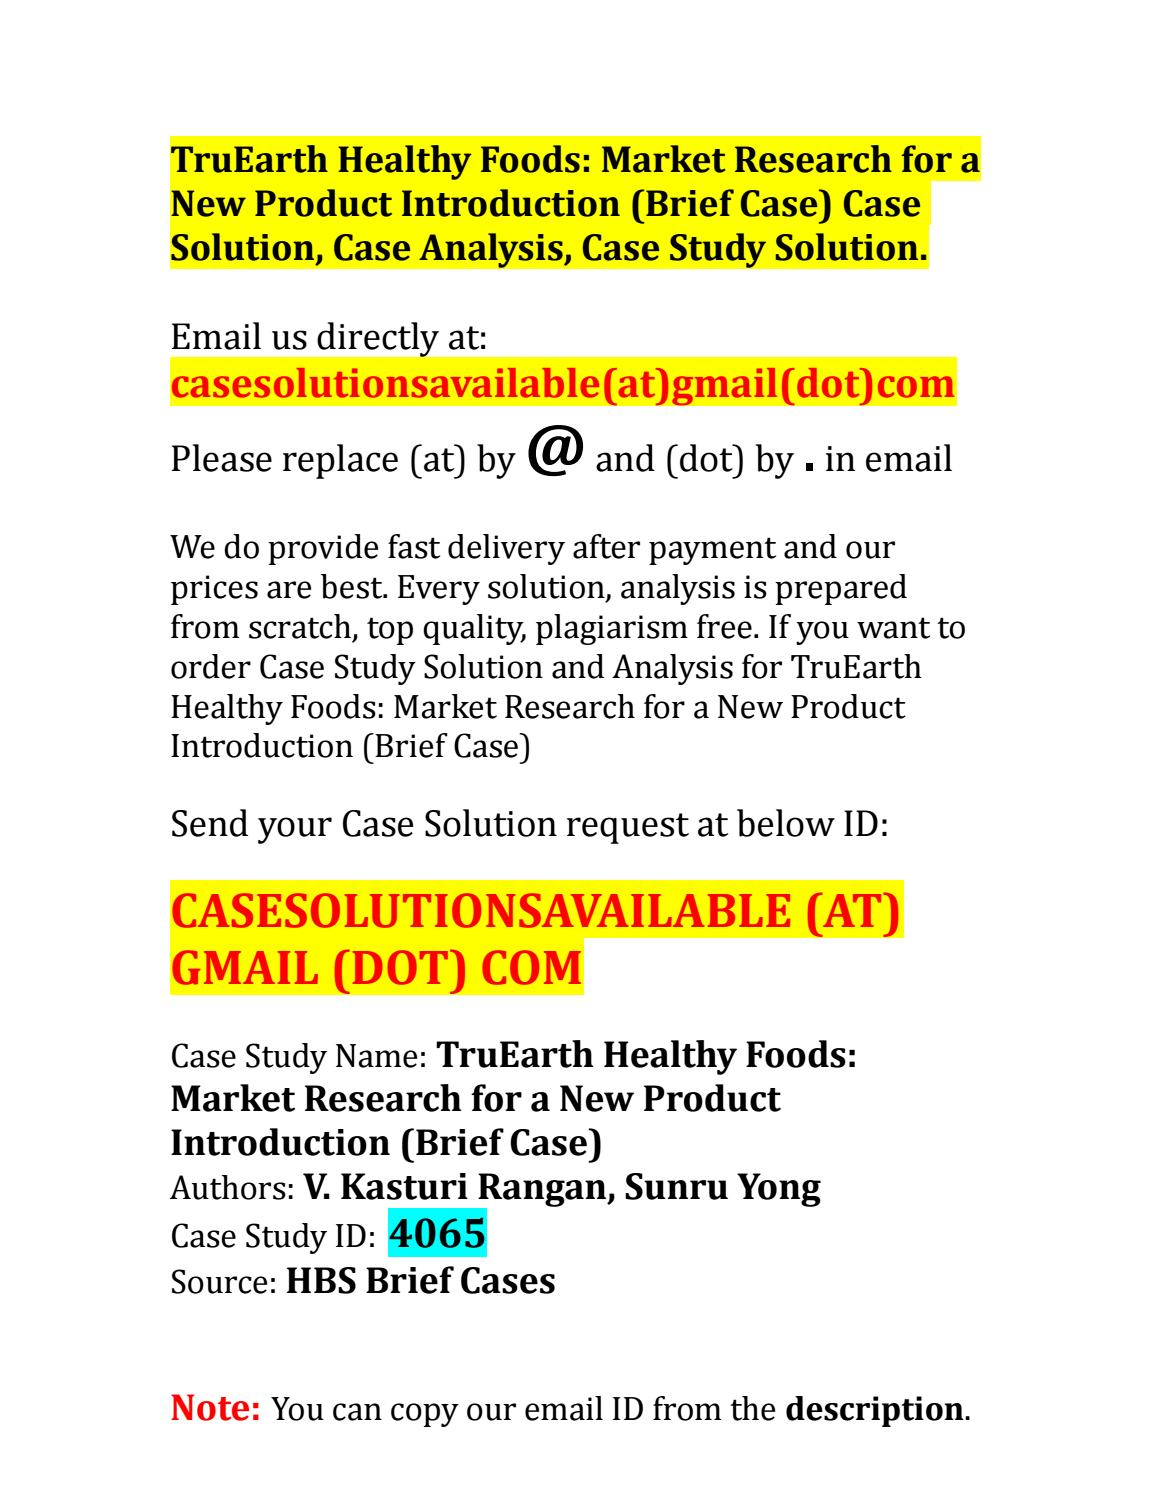 truearth case analysis Truearth healthy foods: market research for a new product introduction (brief case) case solution, case analysis, case study solution by v kasturi rangan, sun.